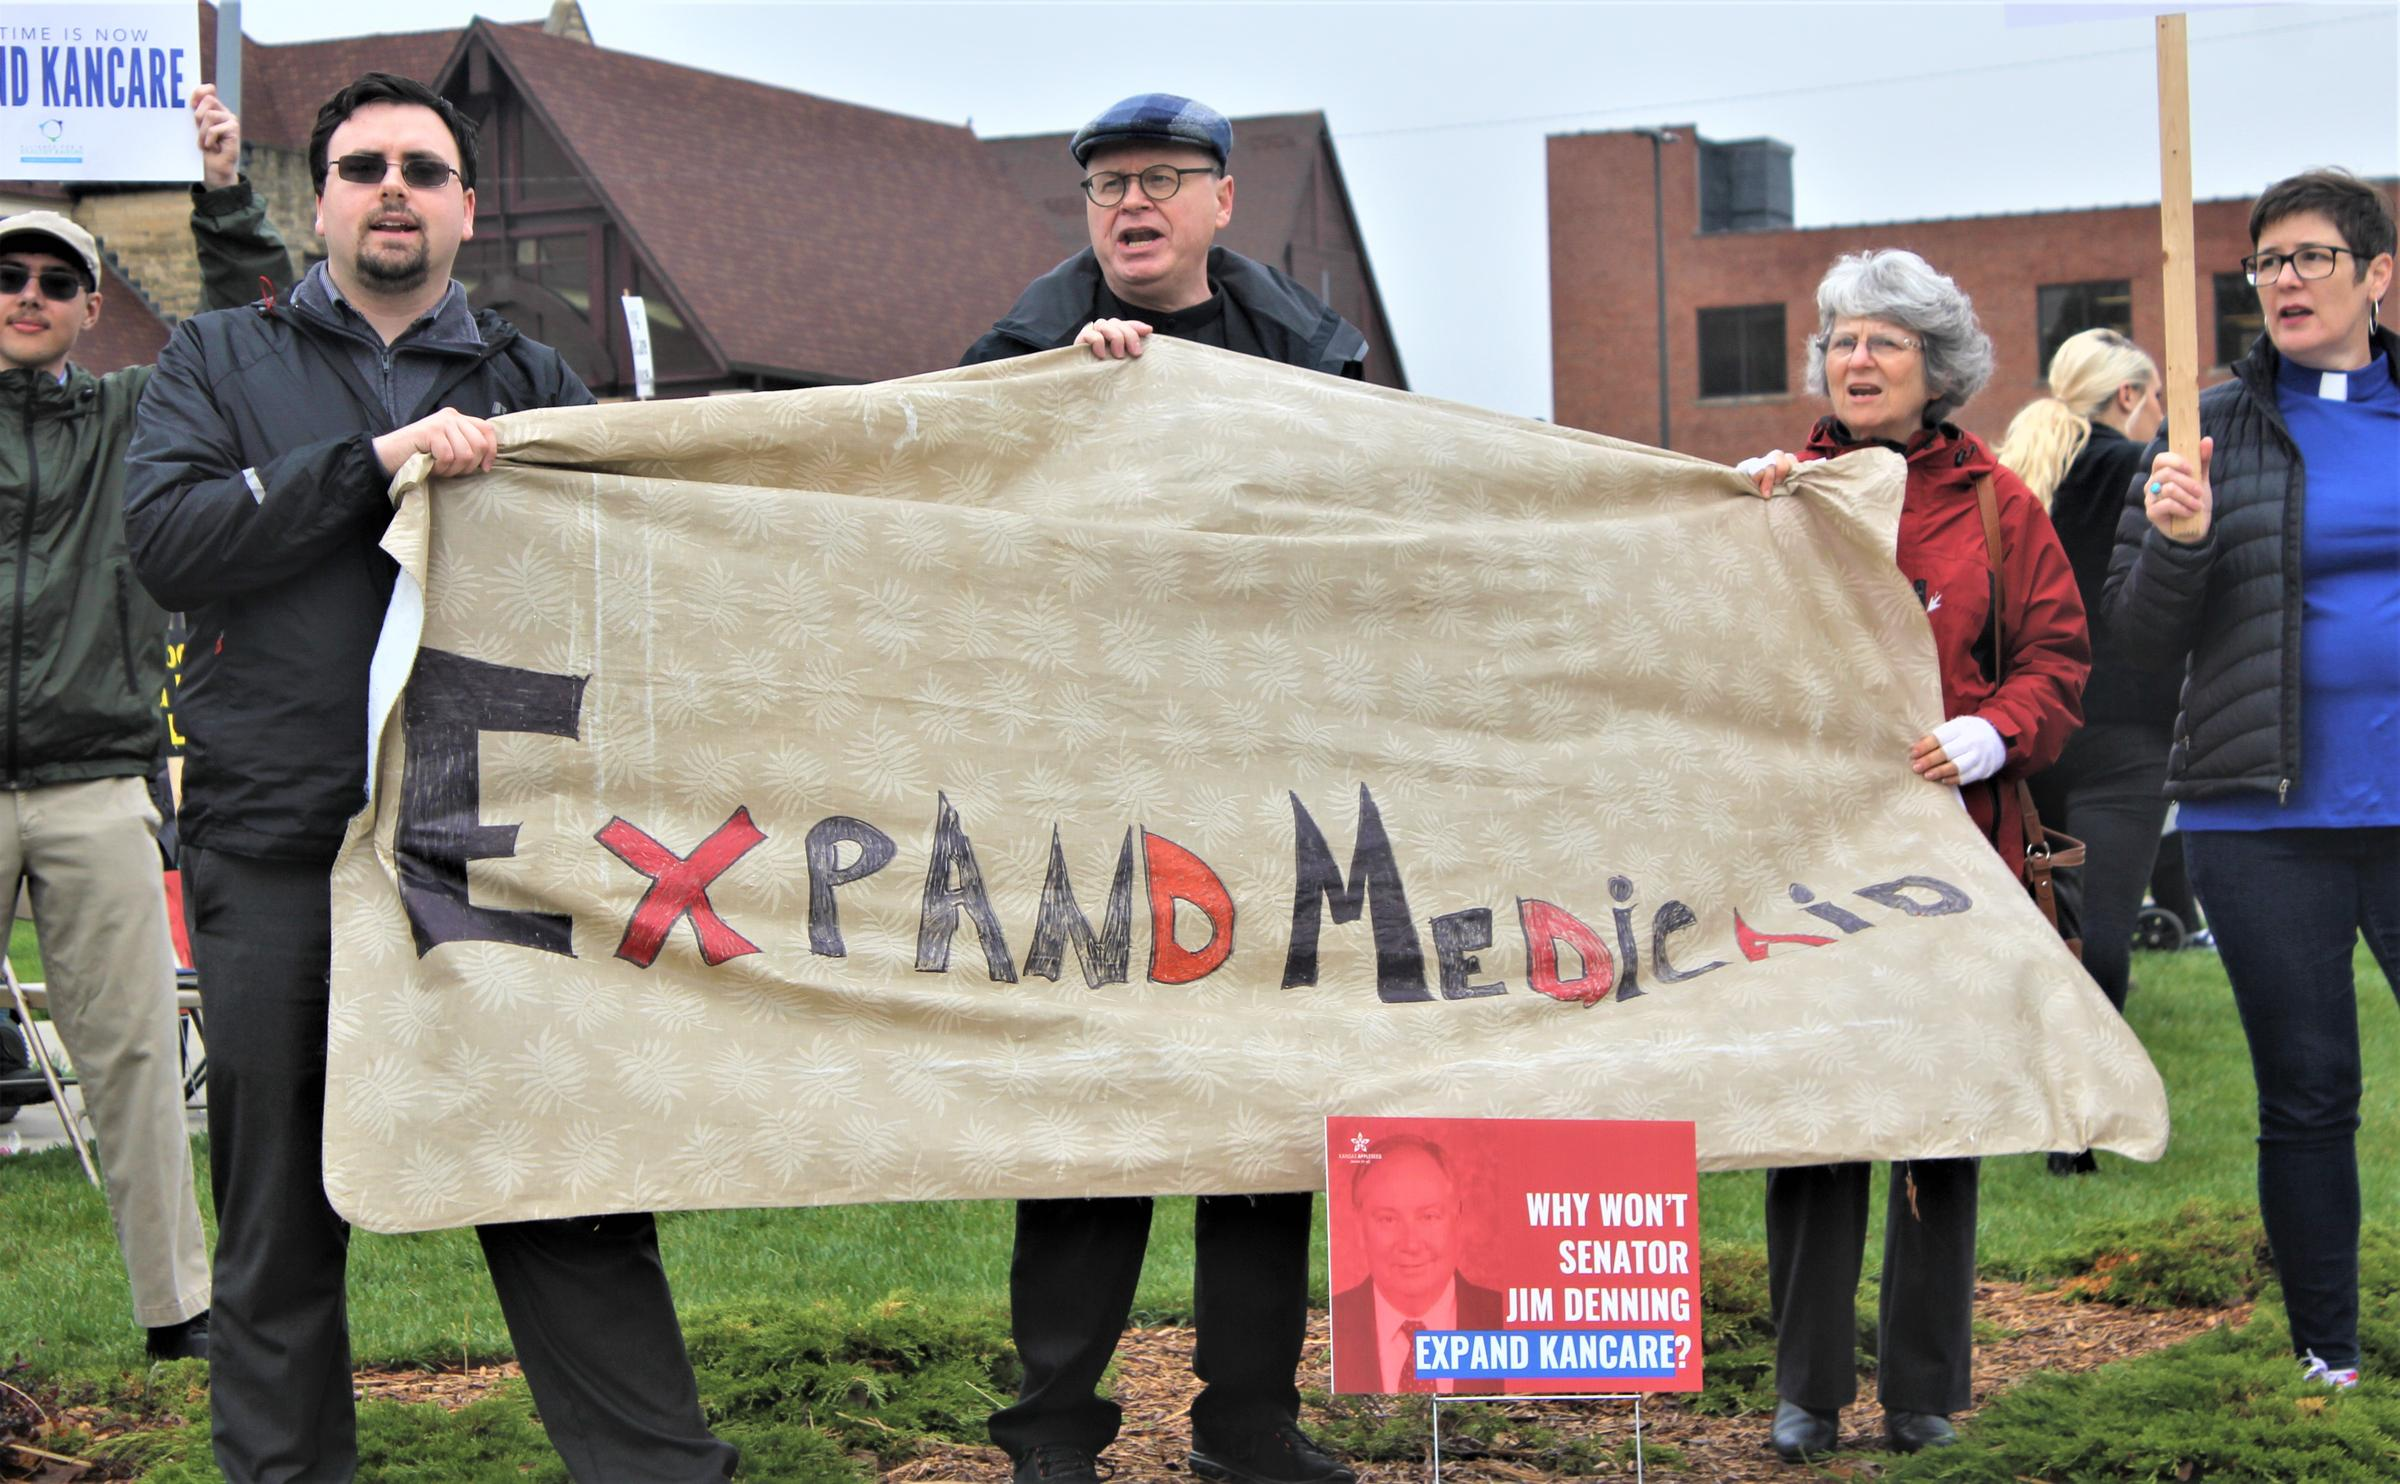 Protesters last year targeted Senate Majority Leader Jim Denning for blocking Medicaid expansion. Now he and Gov. Laura Kelly have settled on a compromise. (Photo by Jim McLean, Kansas News Service)